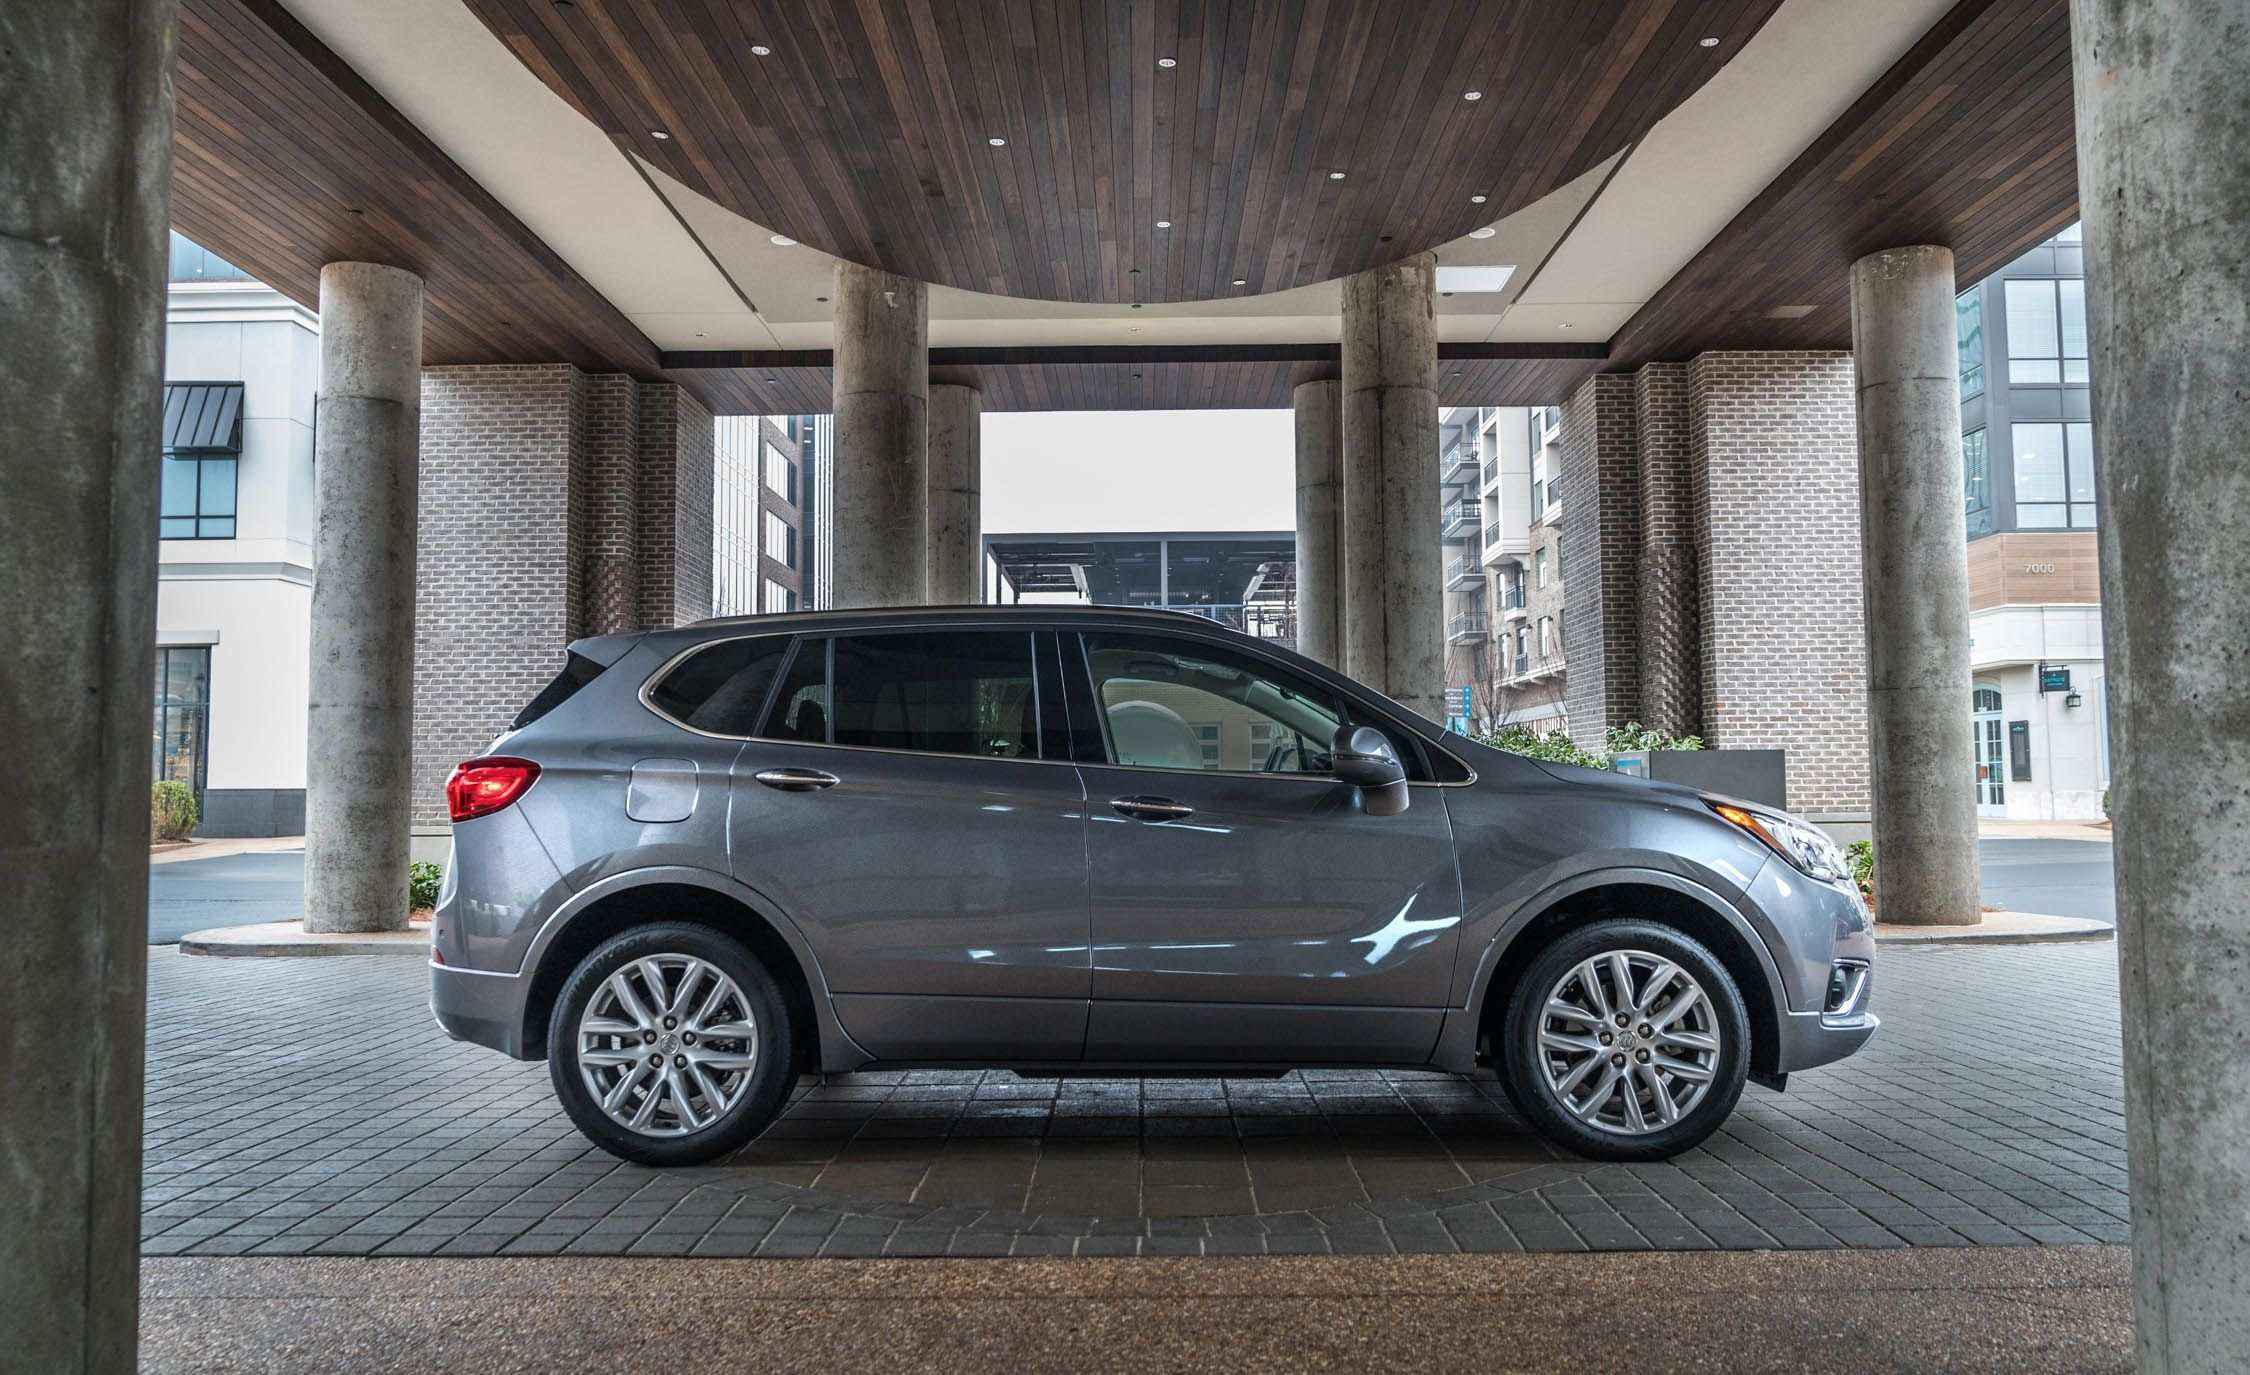 22 Concept of Buick Envision 2019 Colors Price Picture for Buick Envision 2019 Colors Price